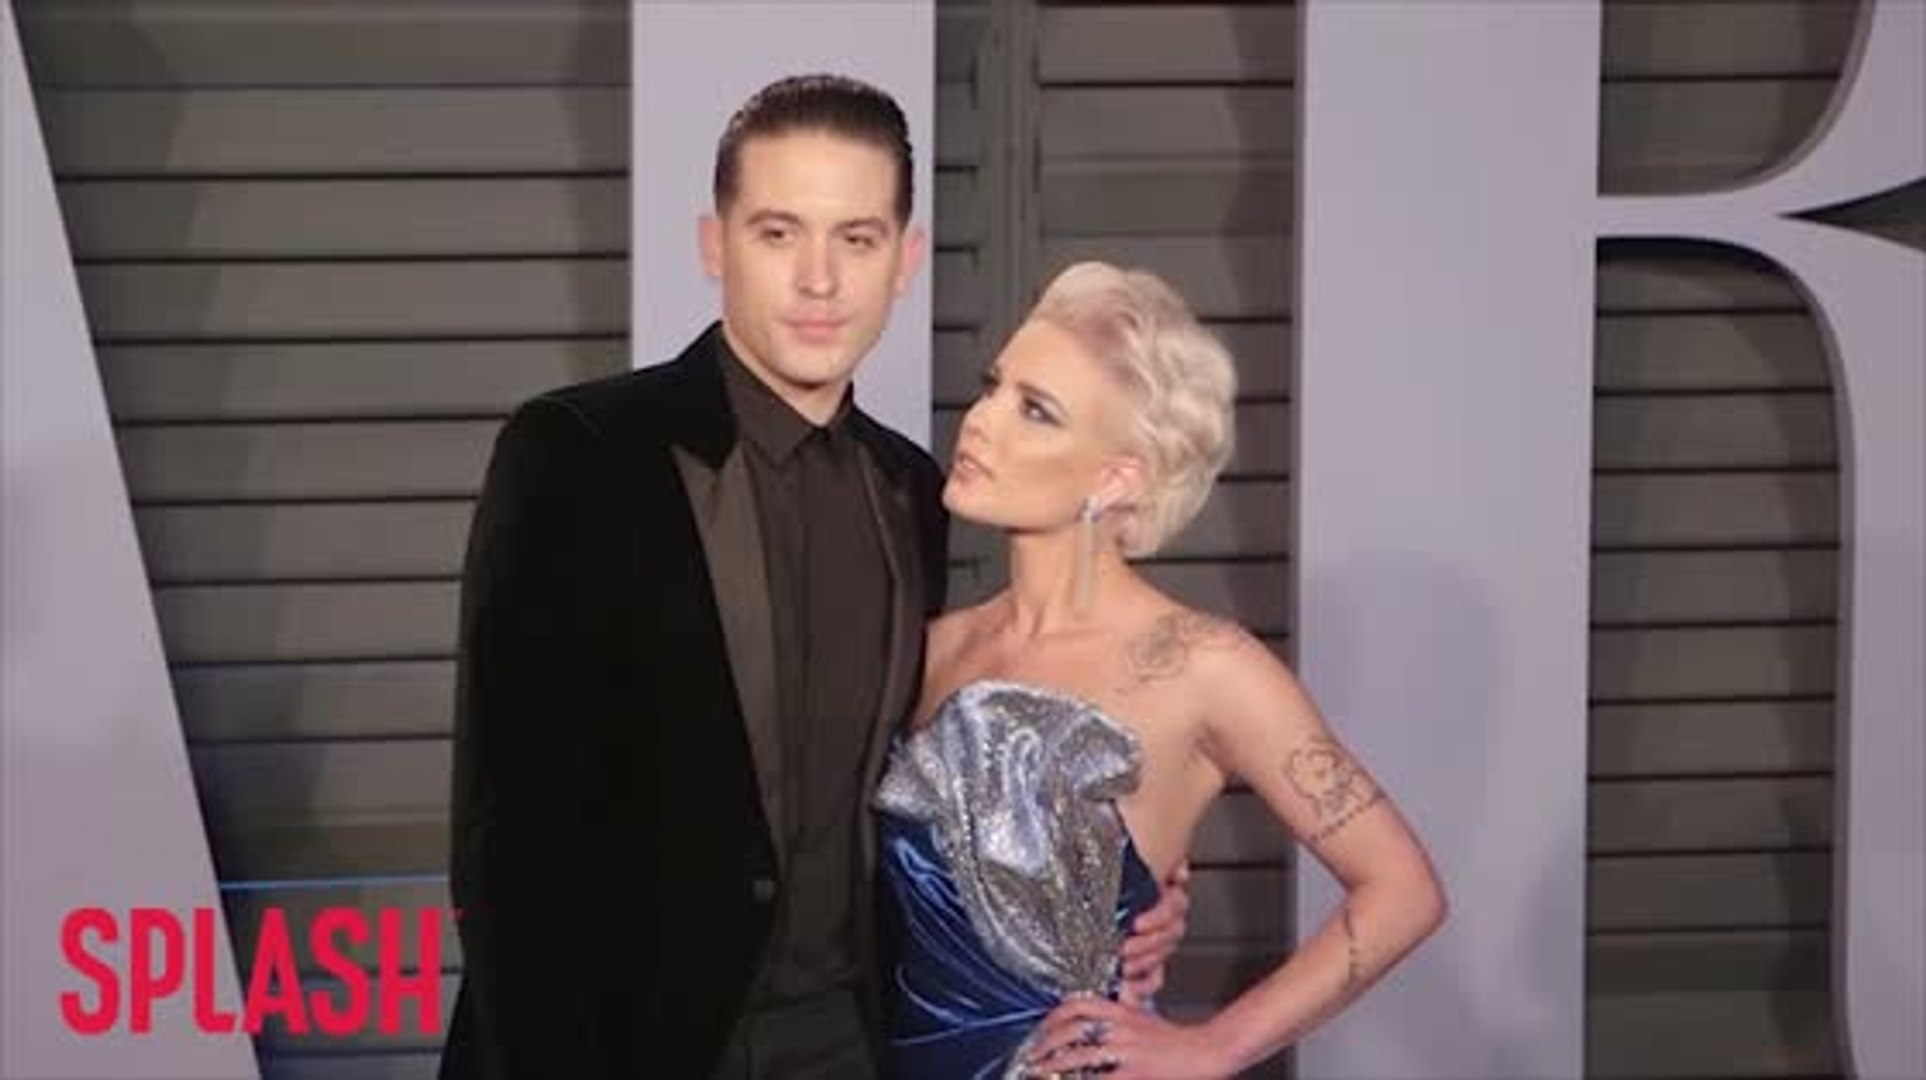 G-Eazy recorded songs with Halsey days before split